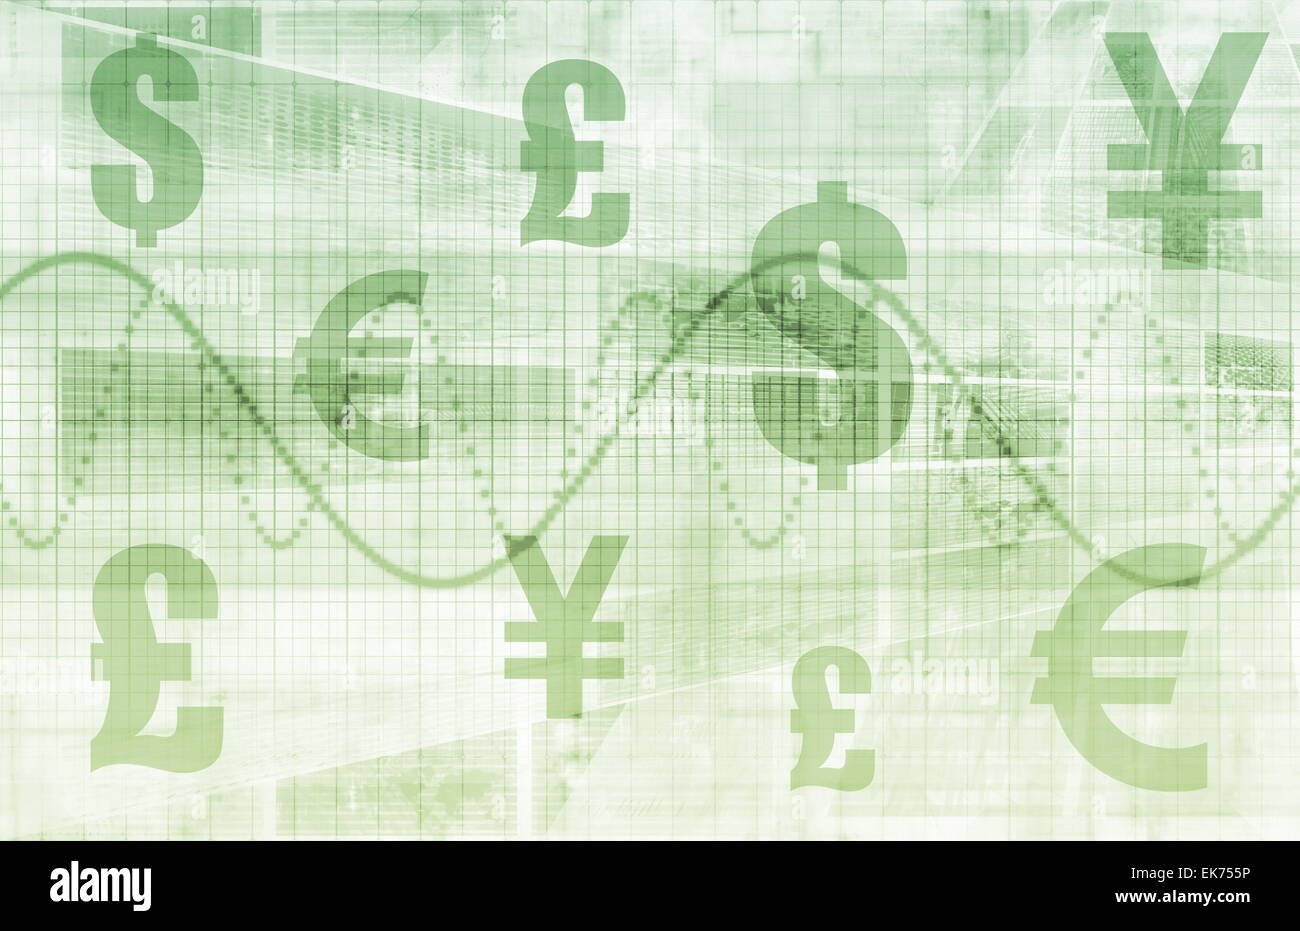 Global Currencies - Stock Image